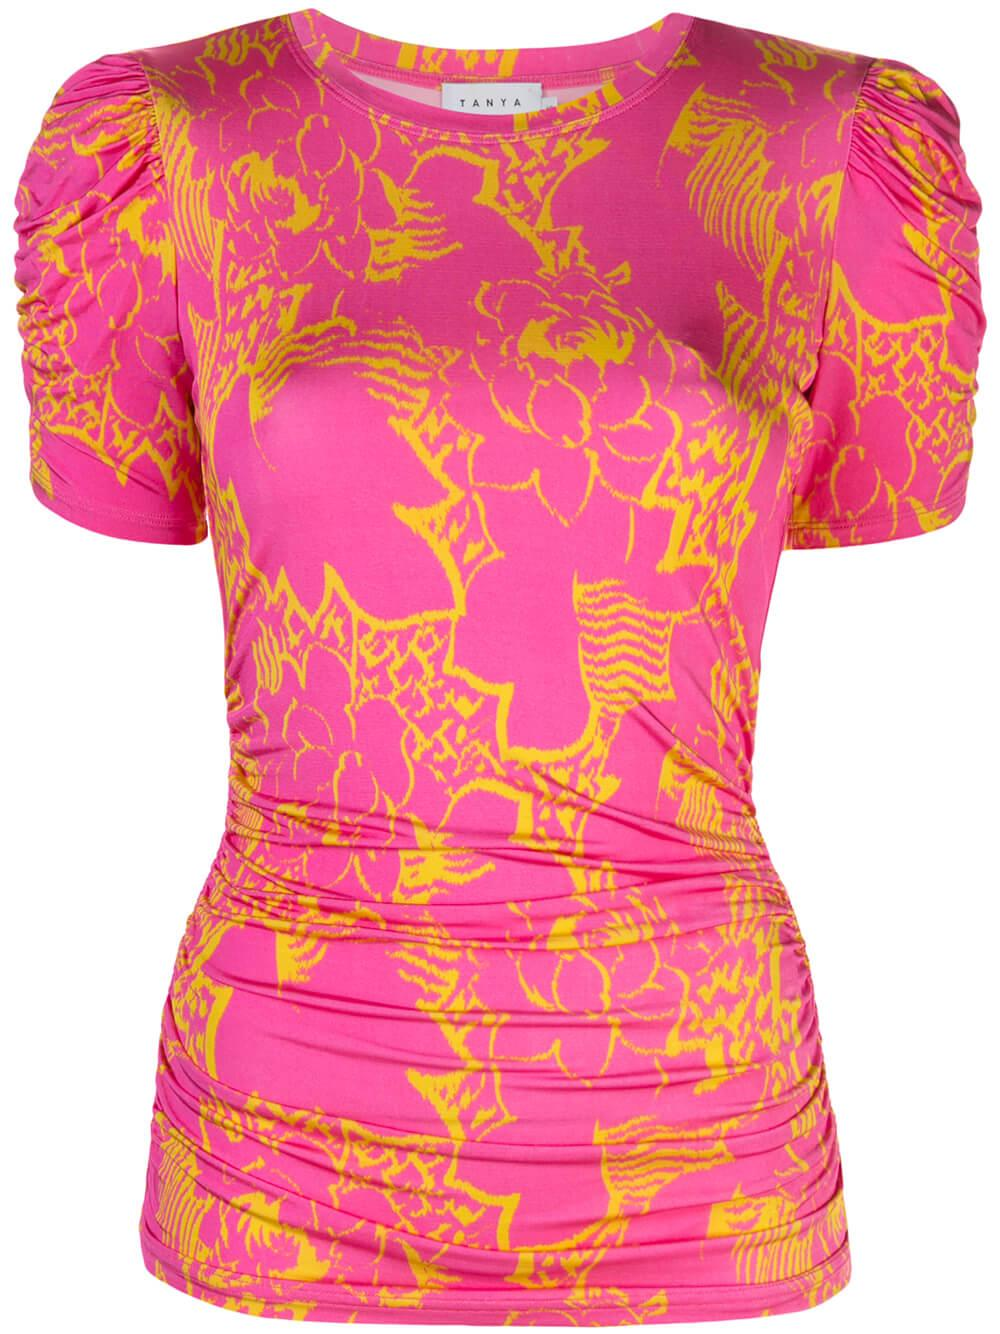 Chaia Short Sleeve Printed Top